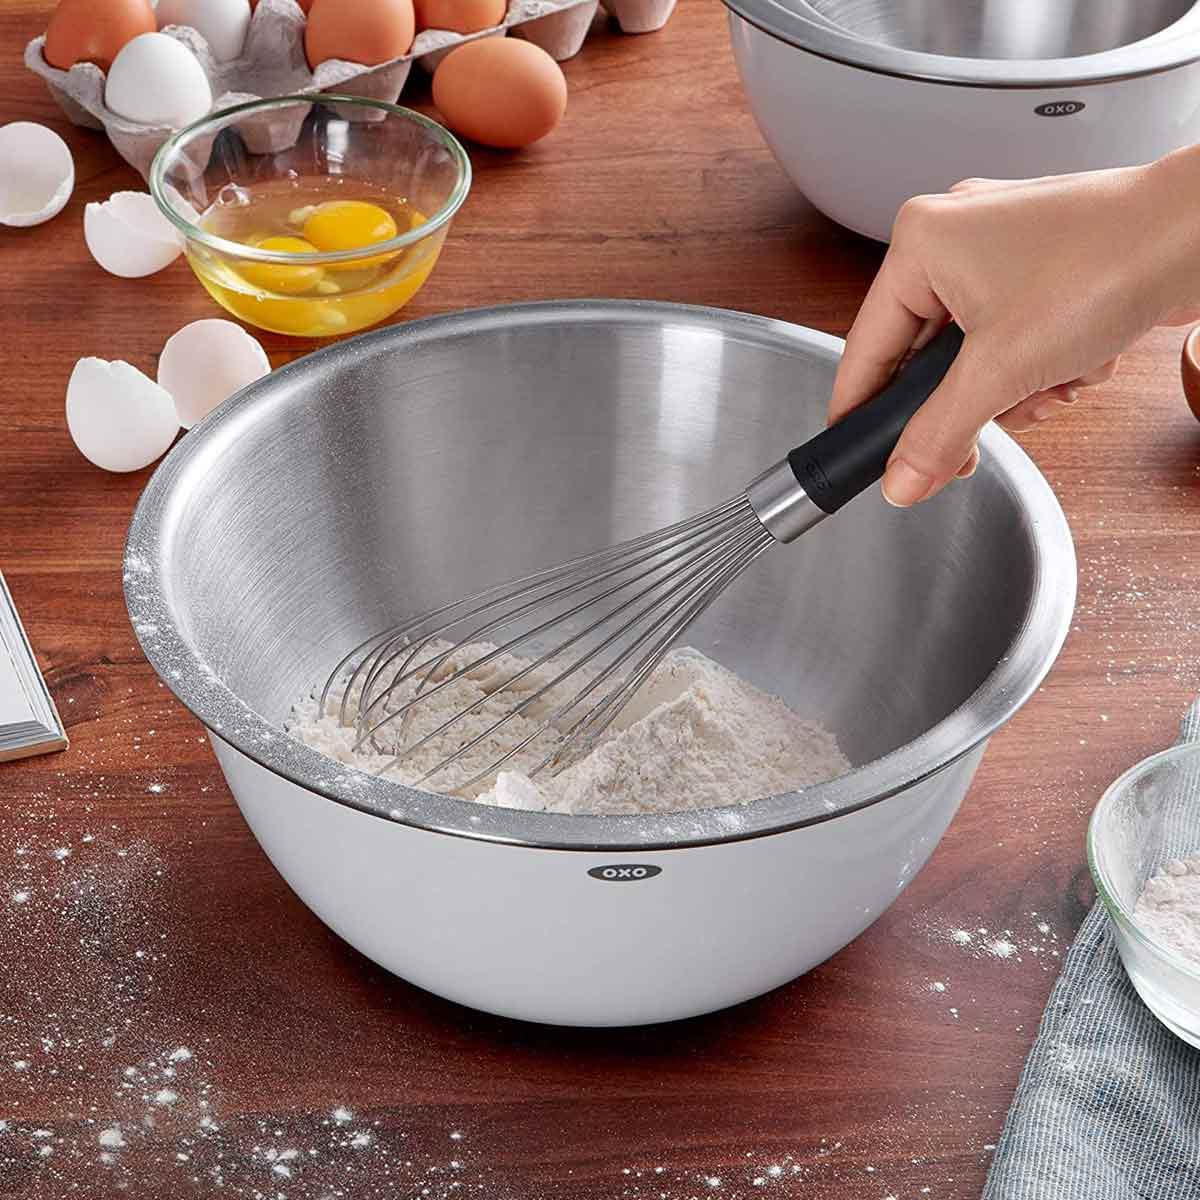 OXO Good Grips Balloon Whisk in use with flour in bowl.